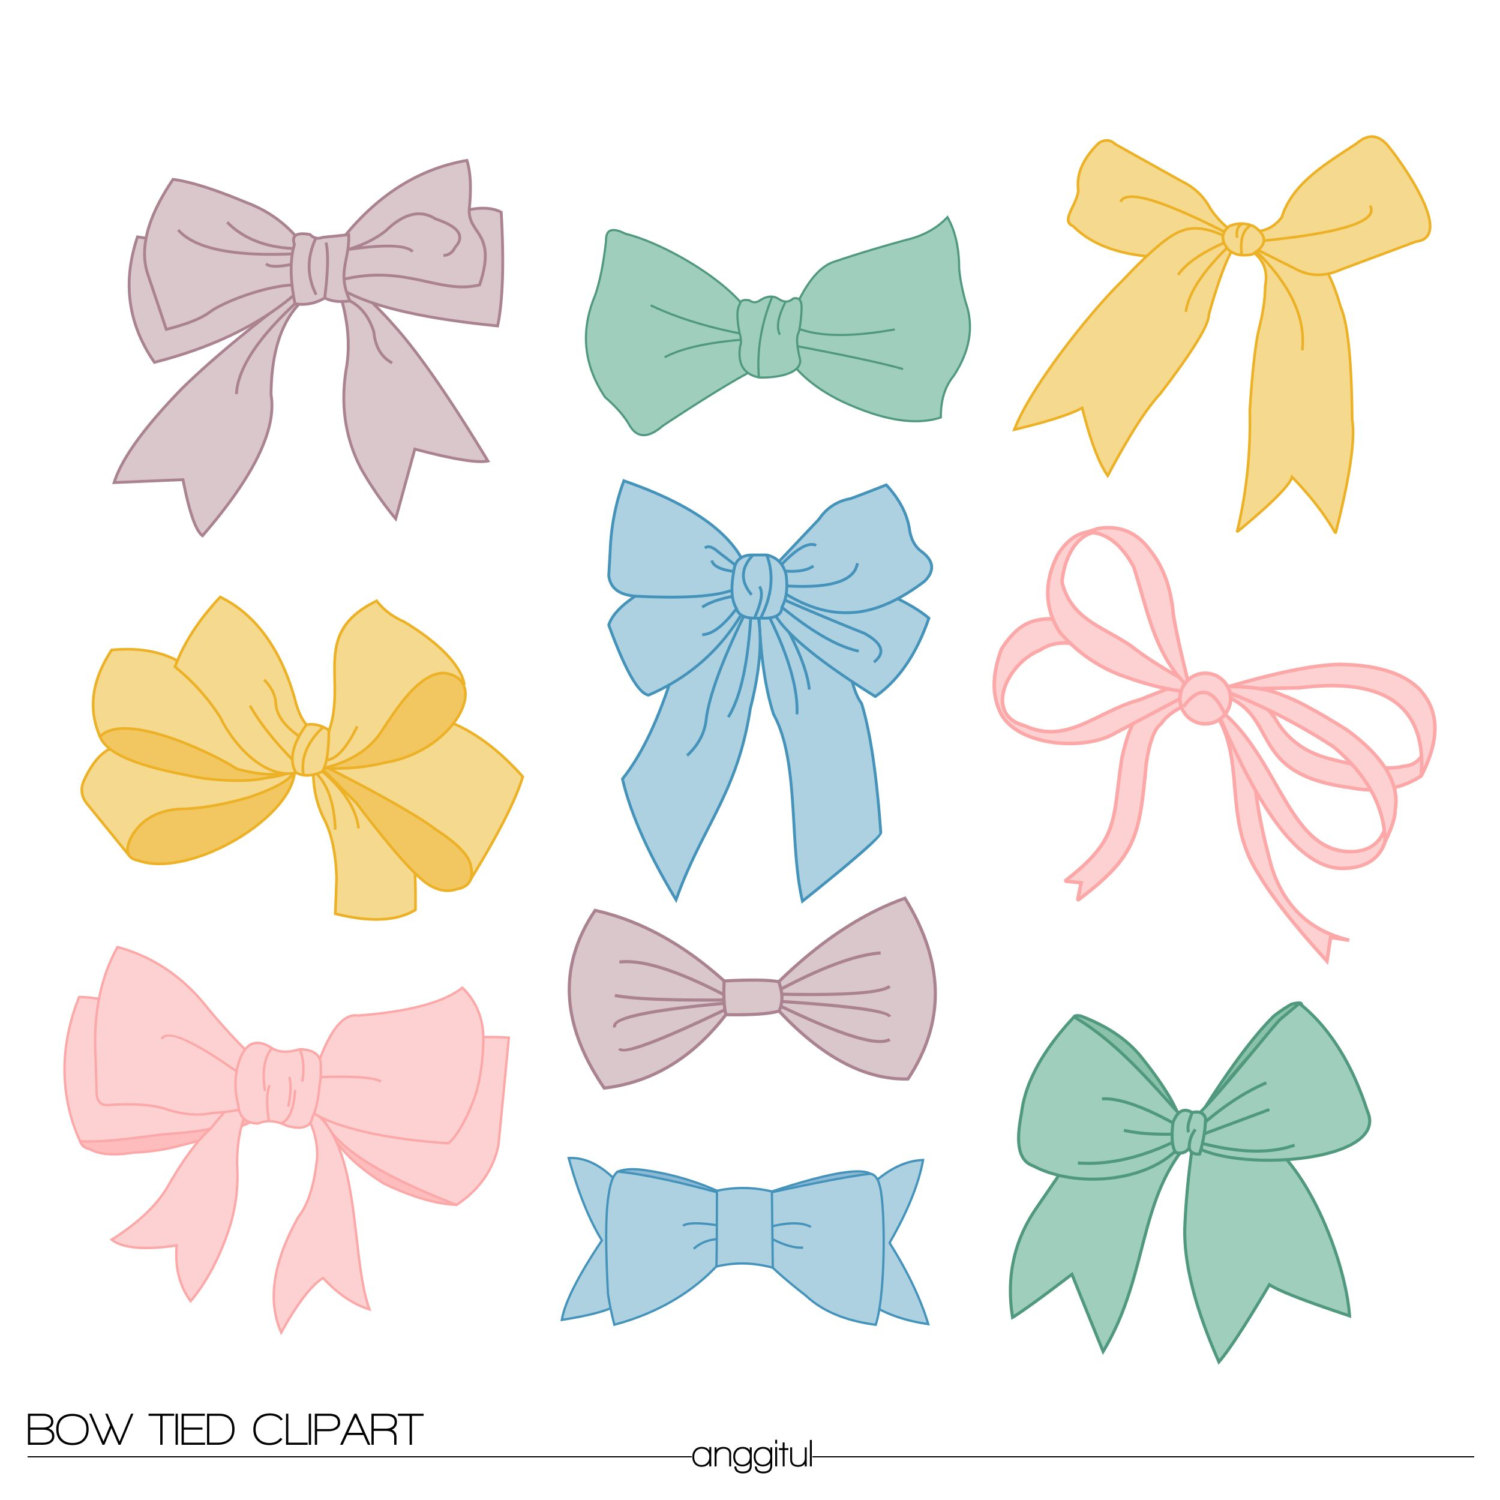 Bows clipart shabby chic. Vintage bow tied ribbons